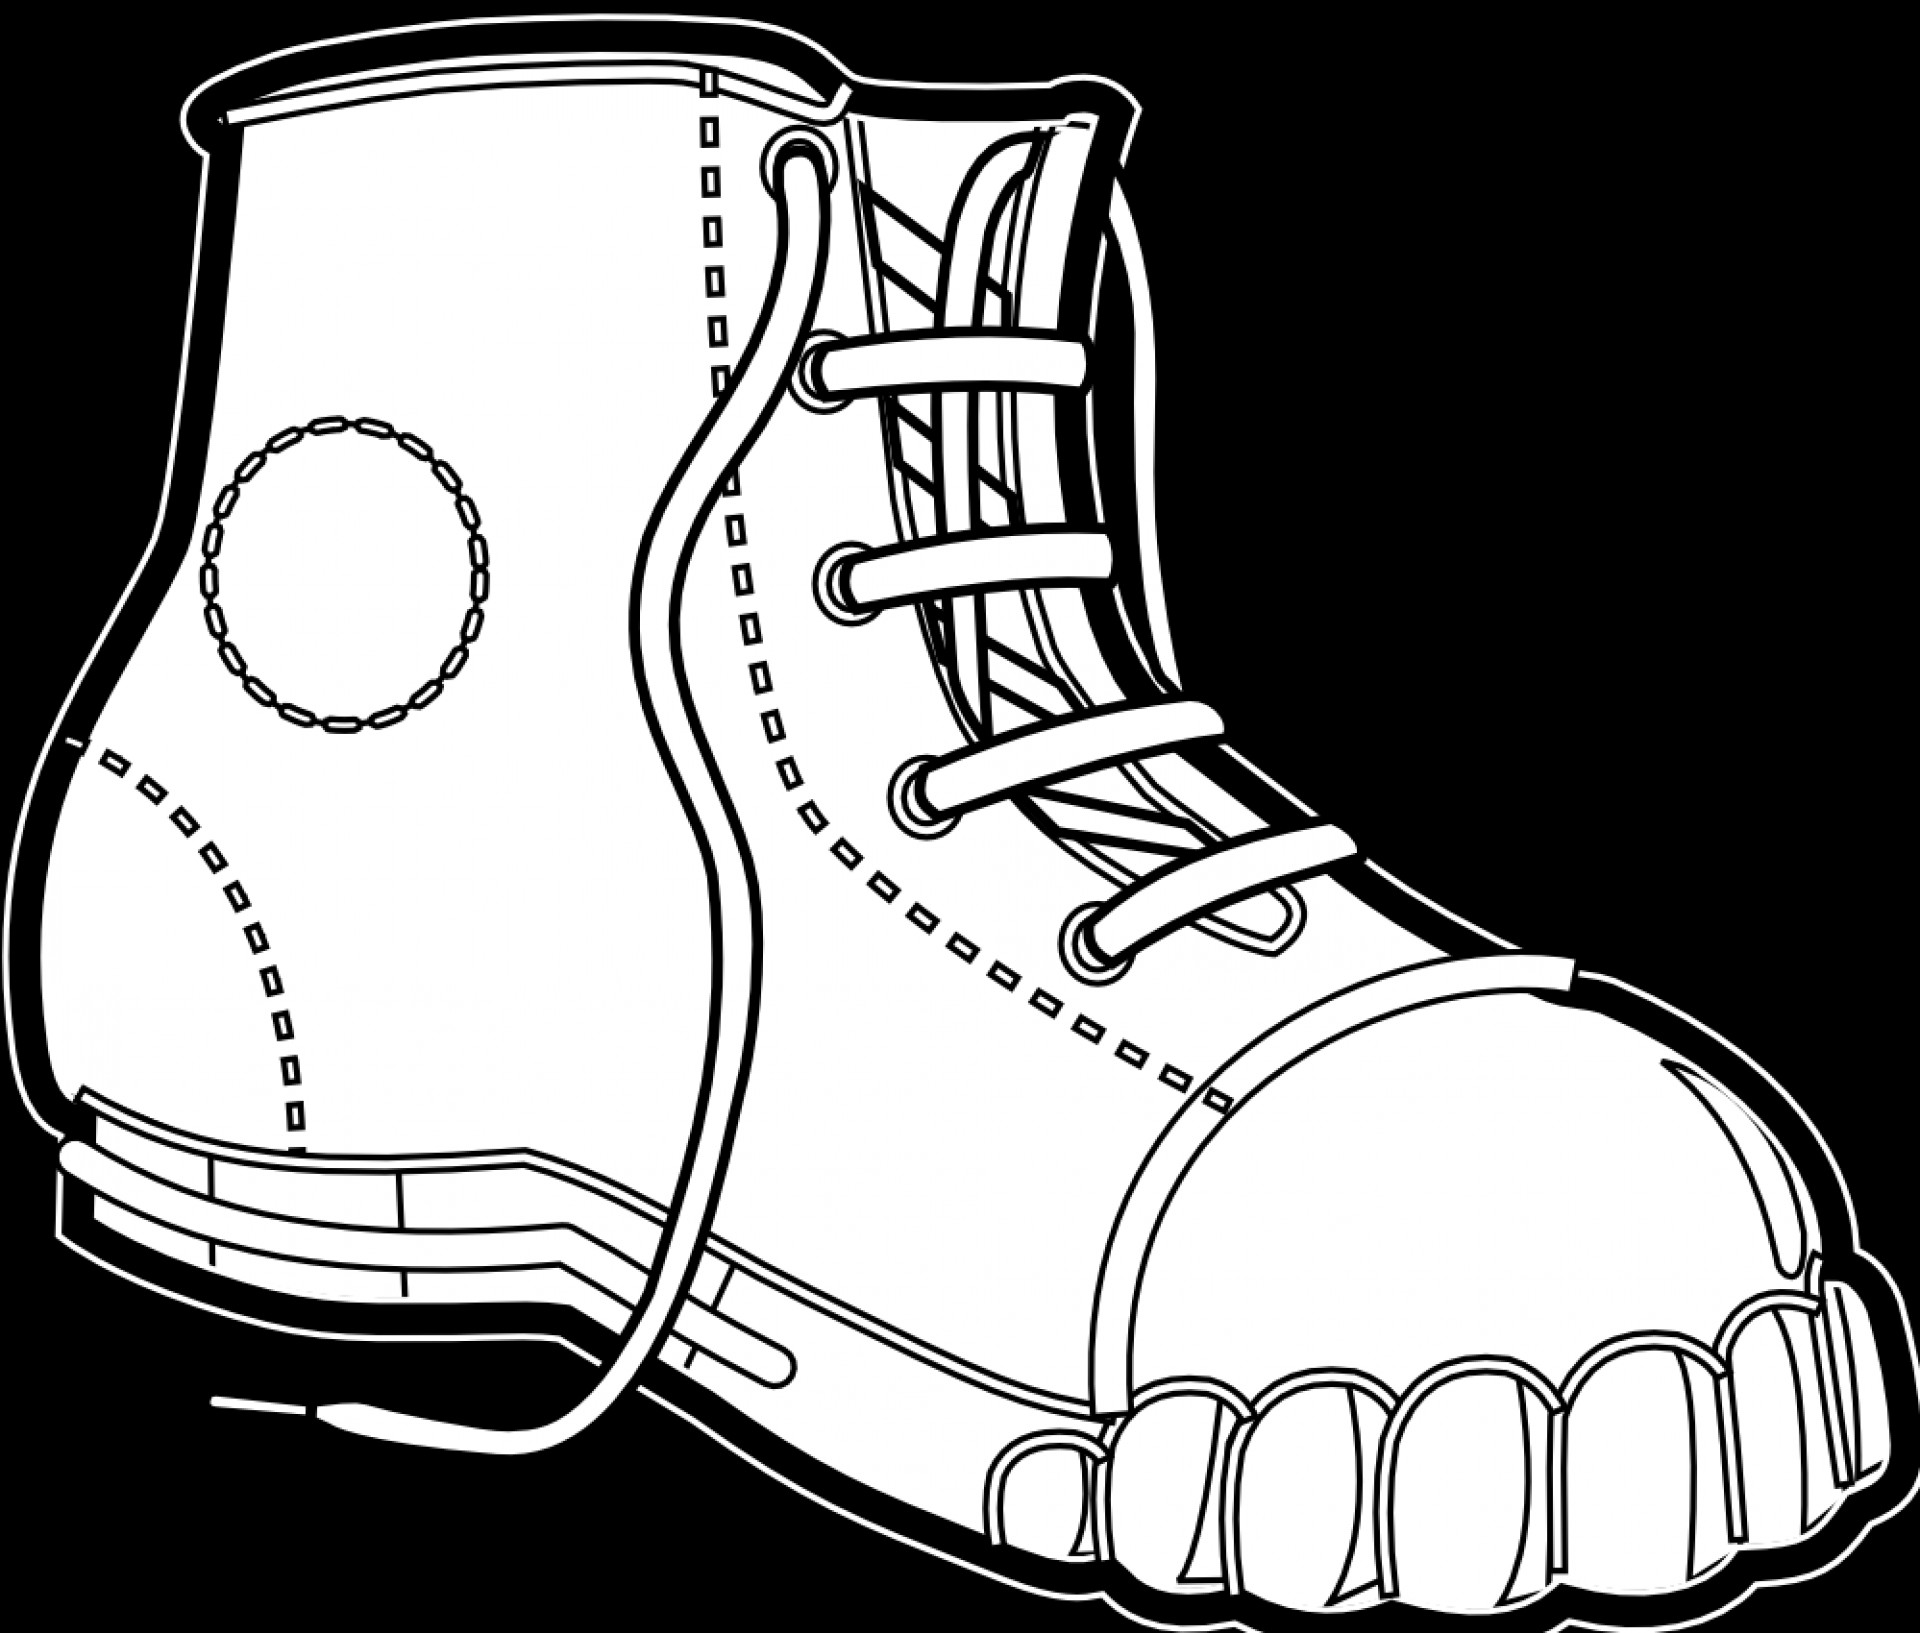 boot draw boots fashion pic boots clip art boot draw